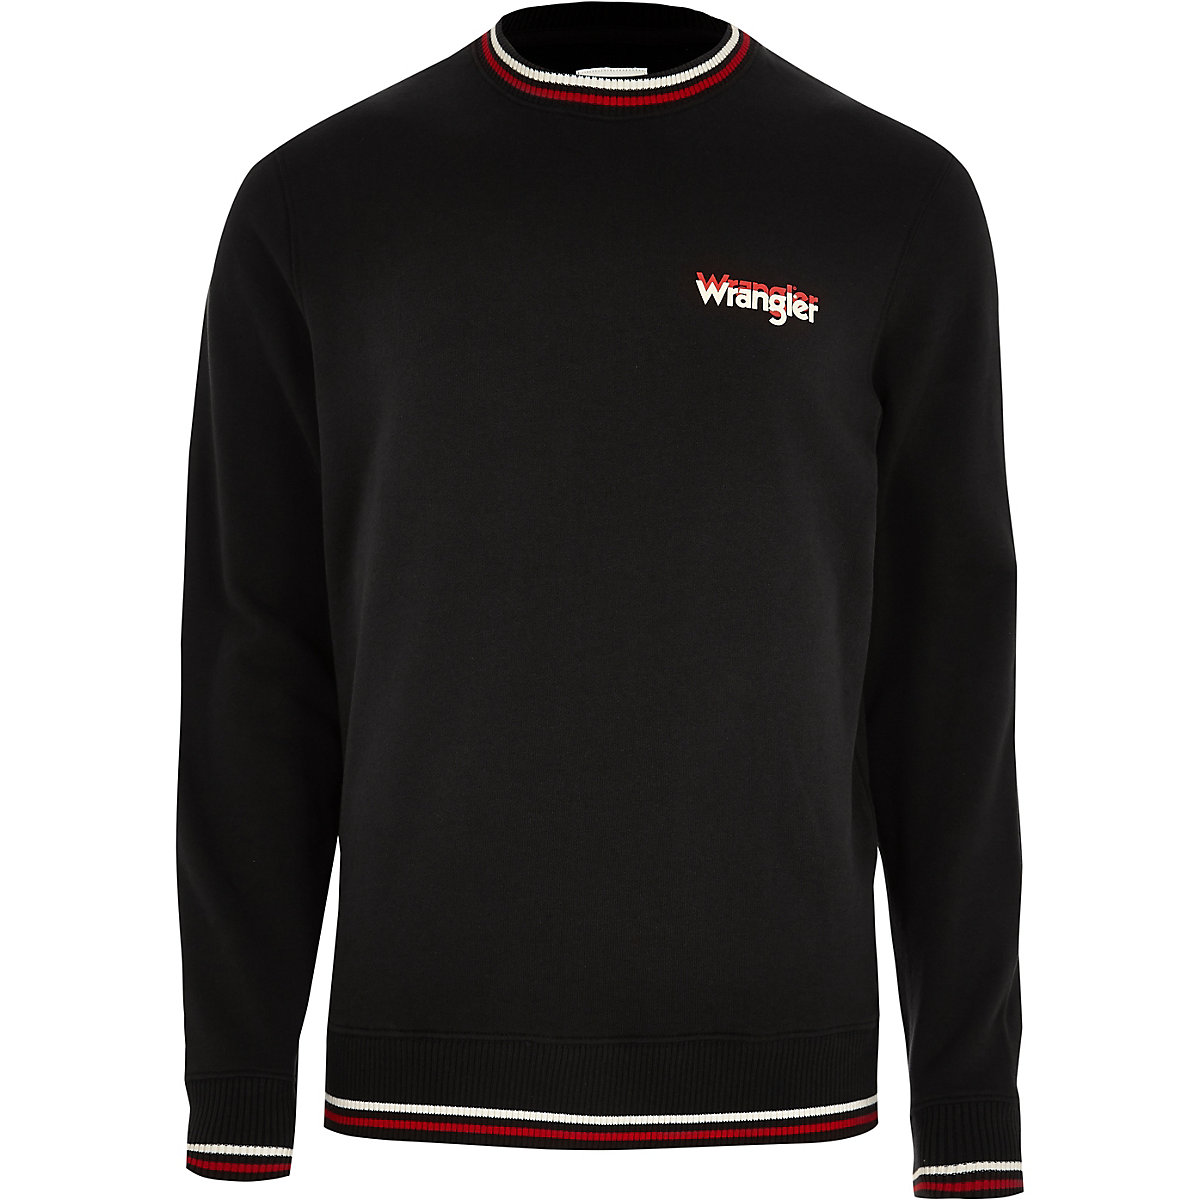 Wrangler black crew neck sweater